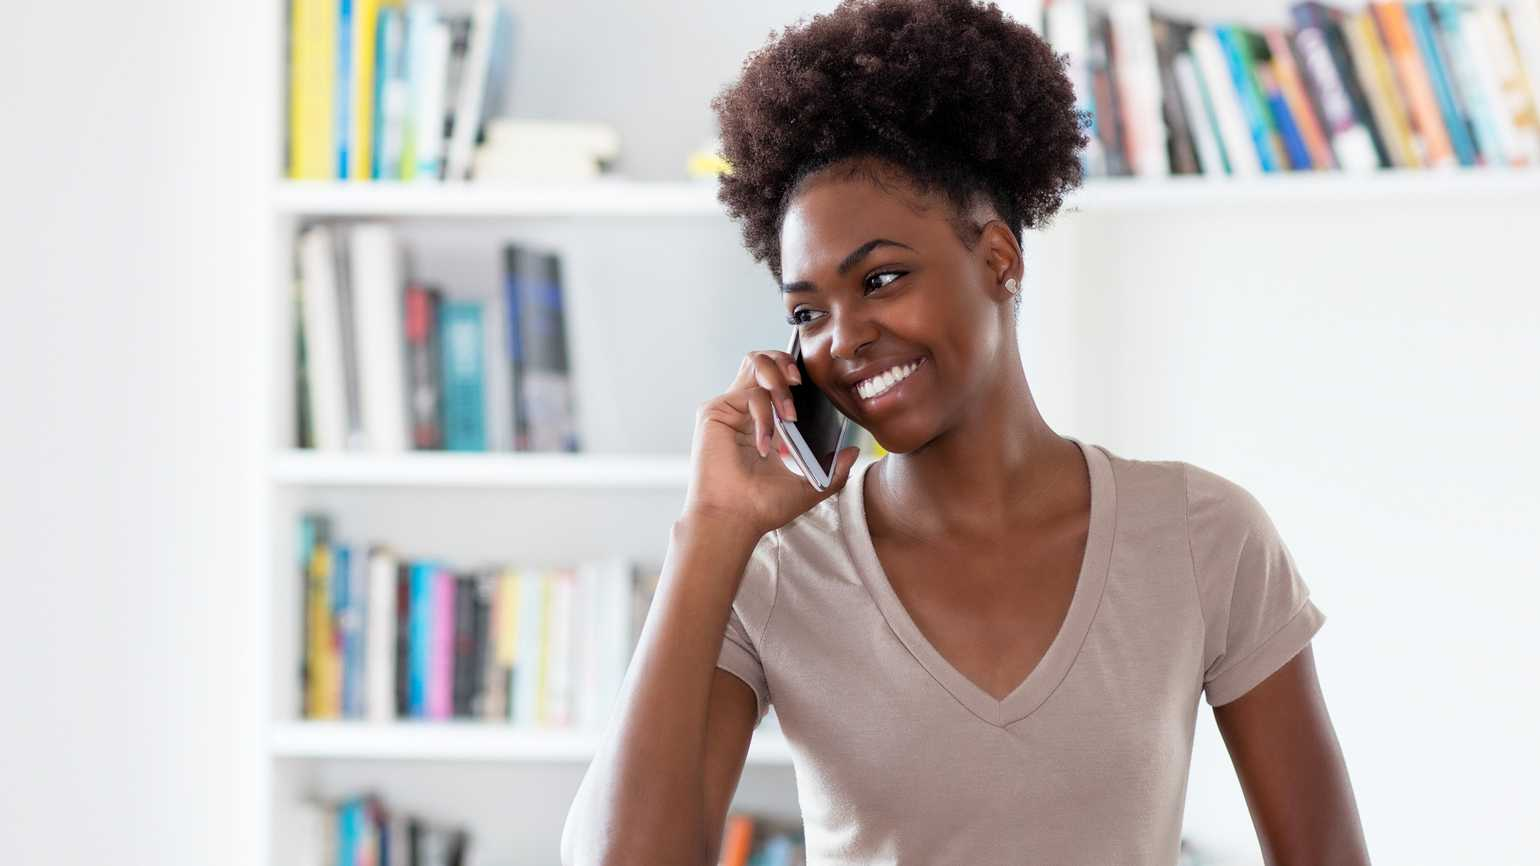 A woman on a phone call; Getty Images